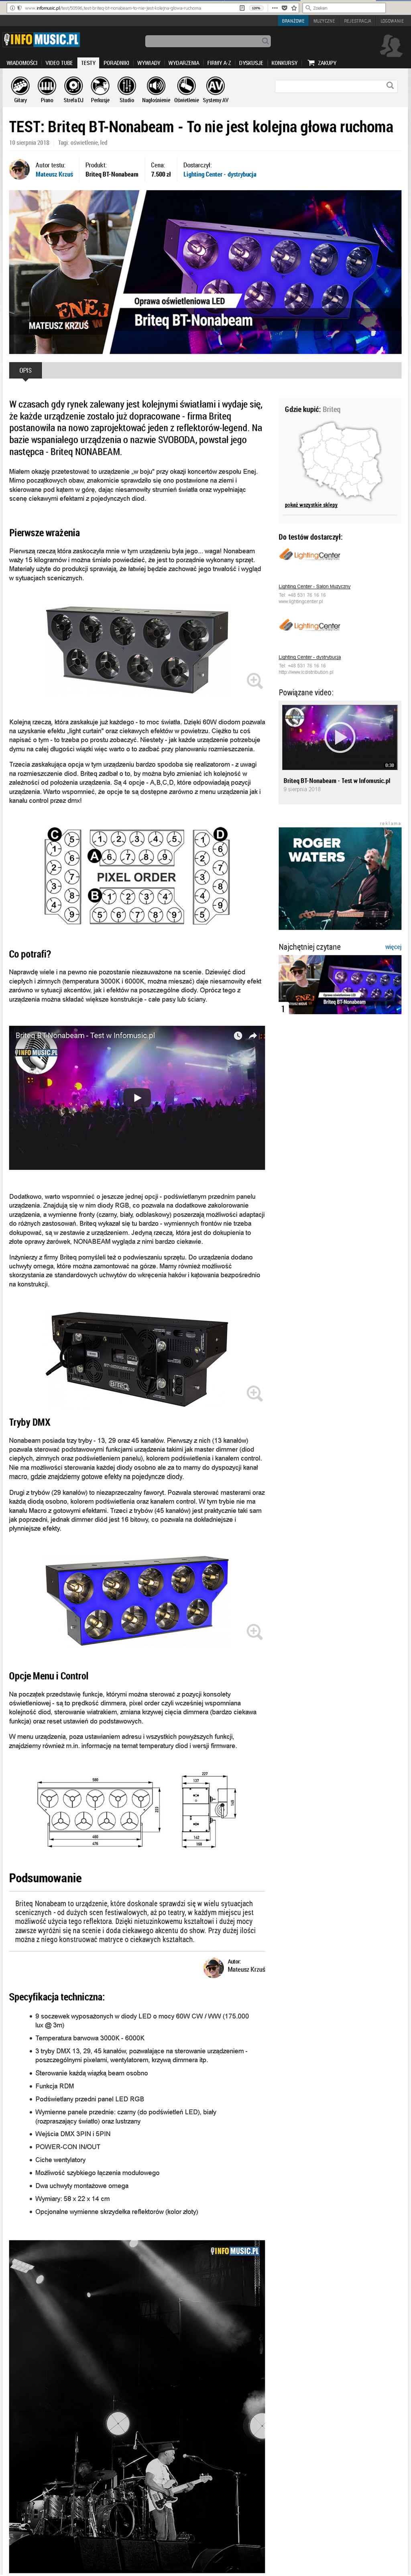 BT-NONABEAM - Review SoundLightUp magasine